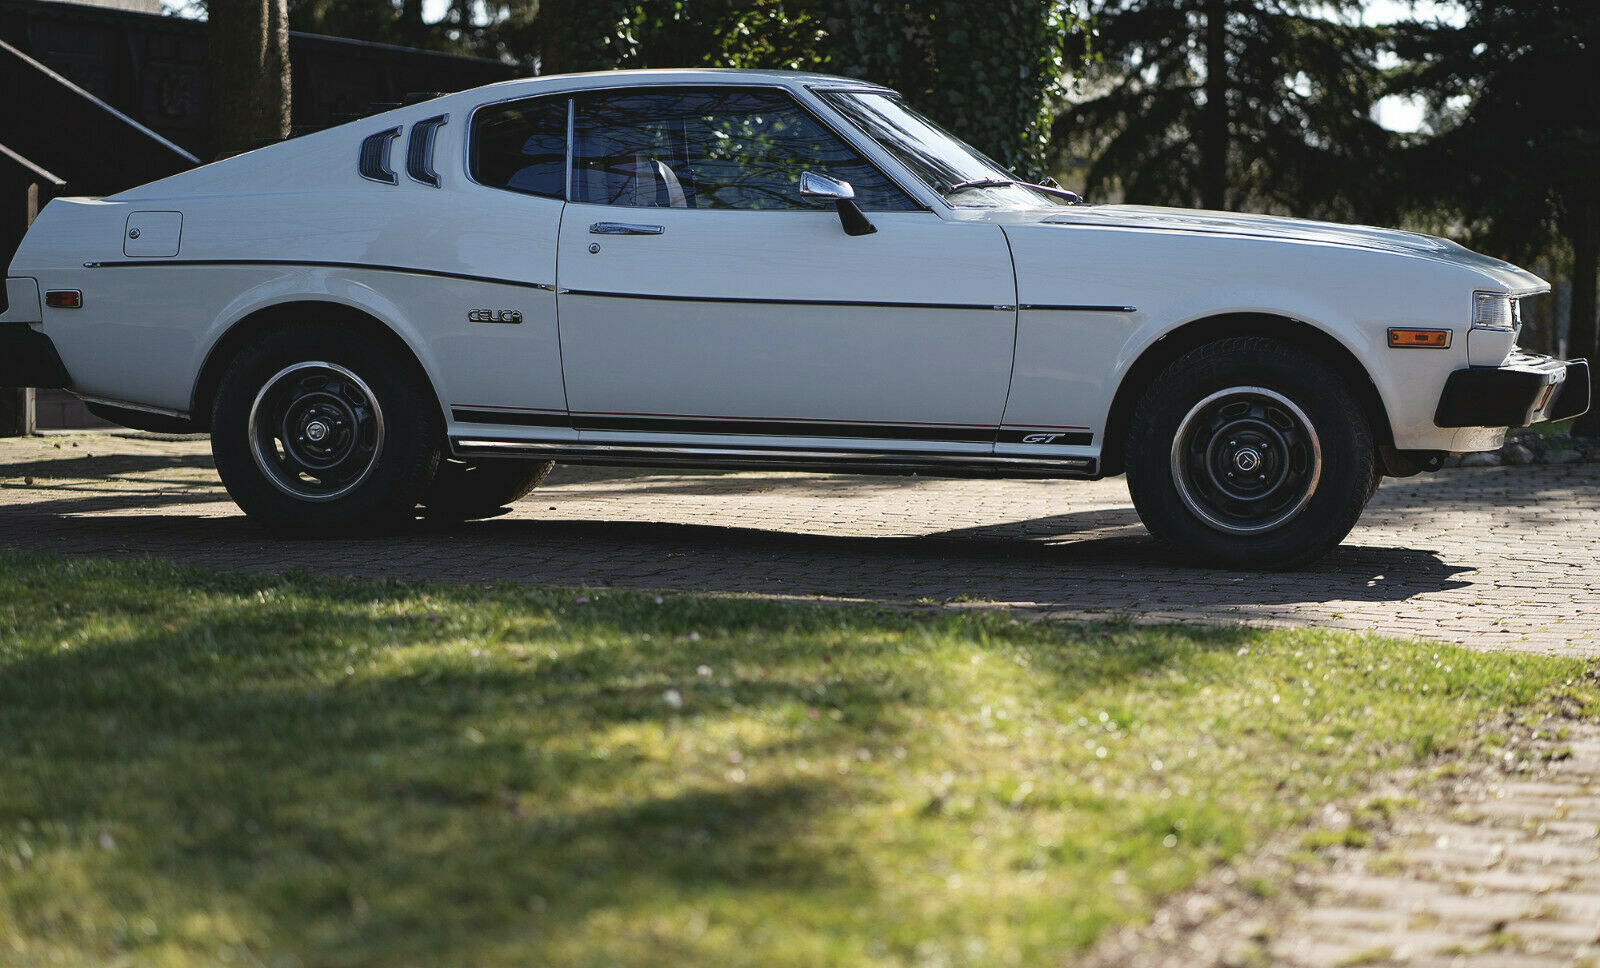 1977 Toyota celica gt ra29 perfect condition For Sale (picture 3 of 6)